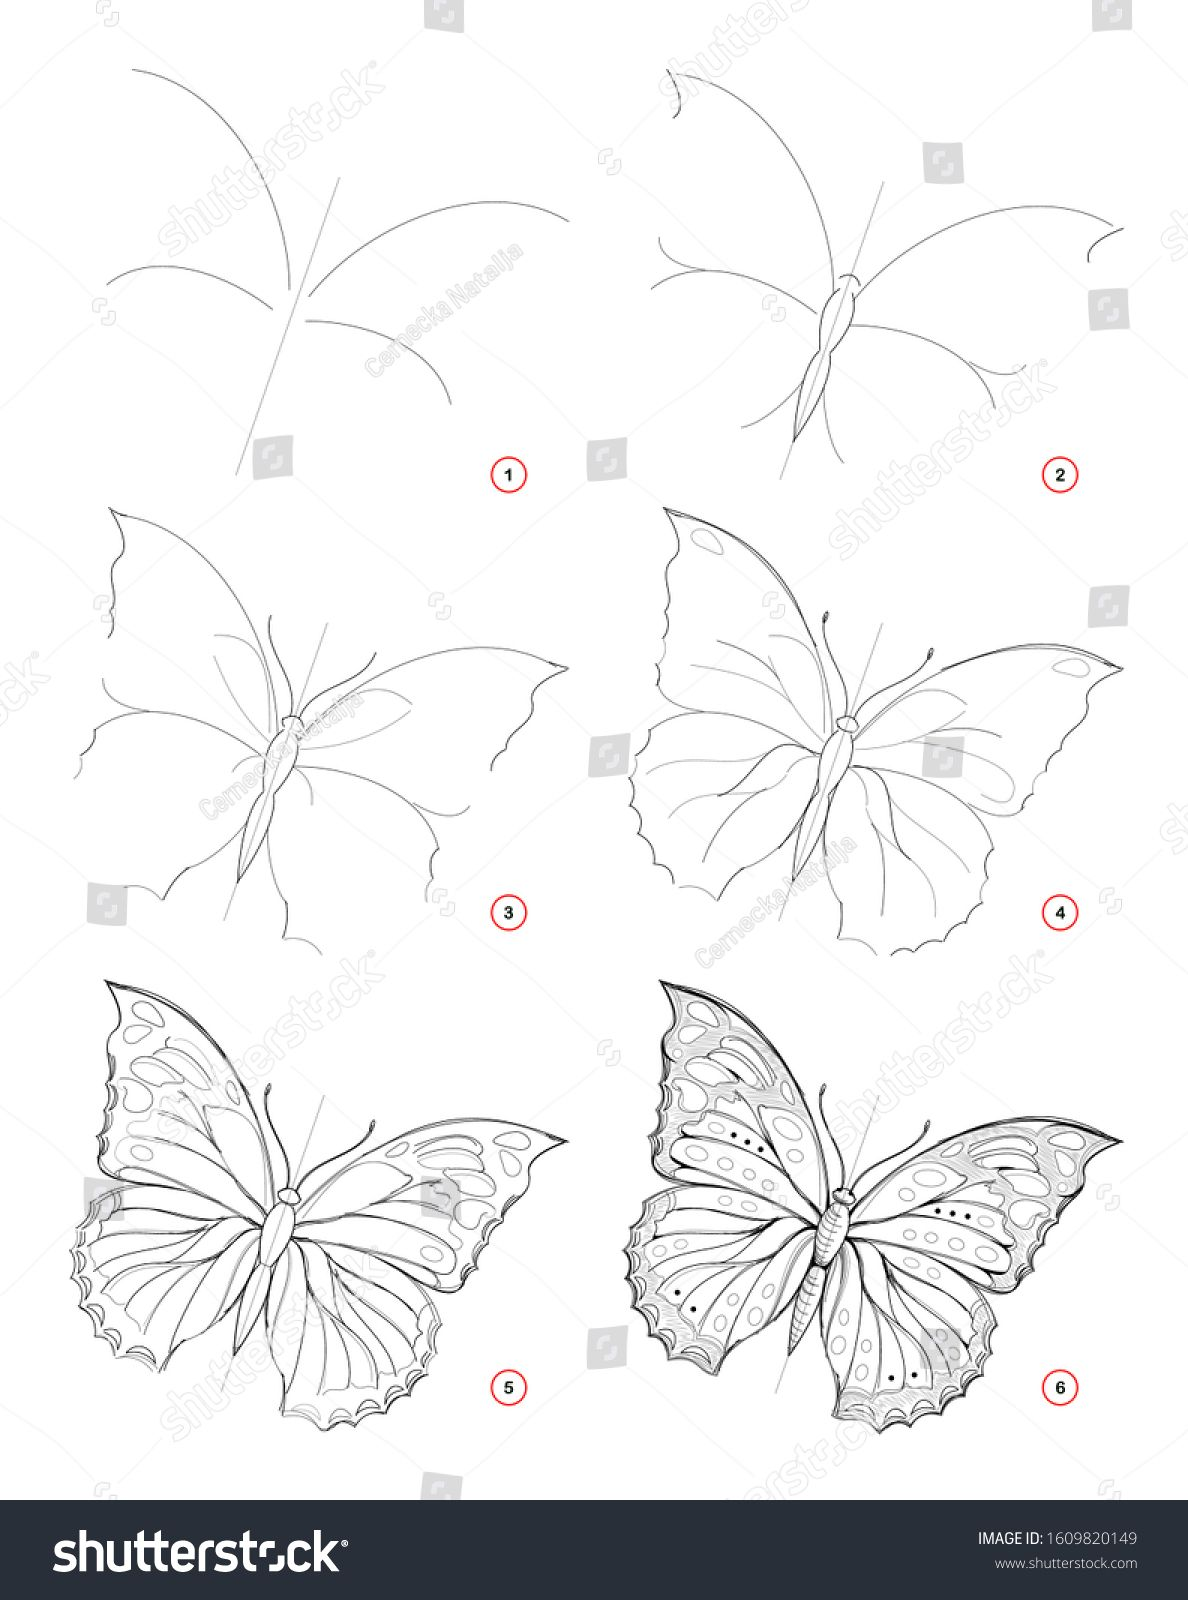 How To Draw Sketch Of Beautiful Fantastic Butterfly Creation Step